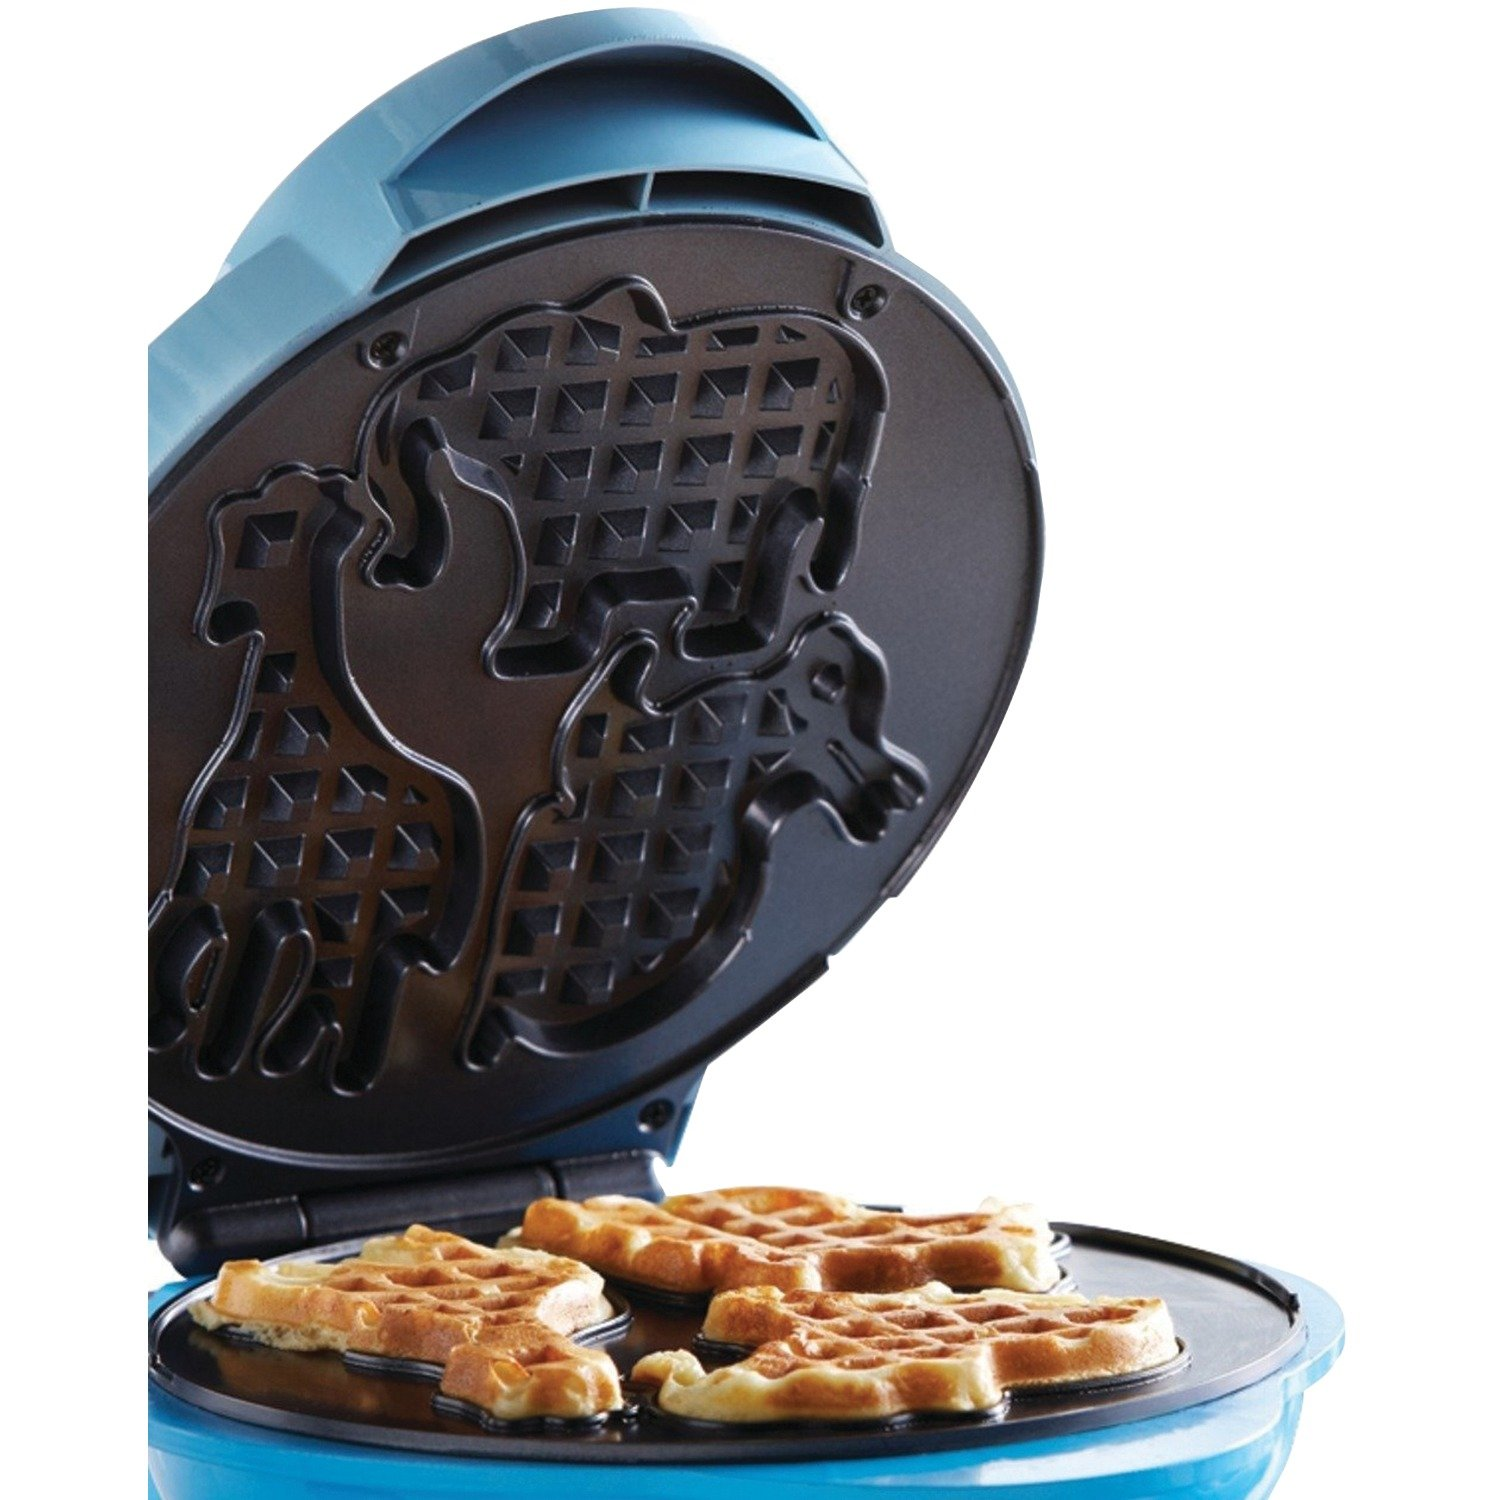 Brentwood TS-253 Appliances Electric Food Maker-Animal-Shapes Waffle Maker, Blue by Brentwood (Image #8)